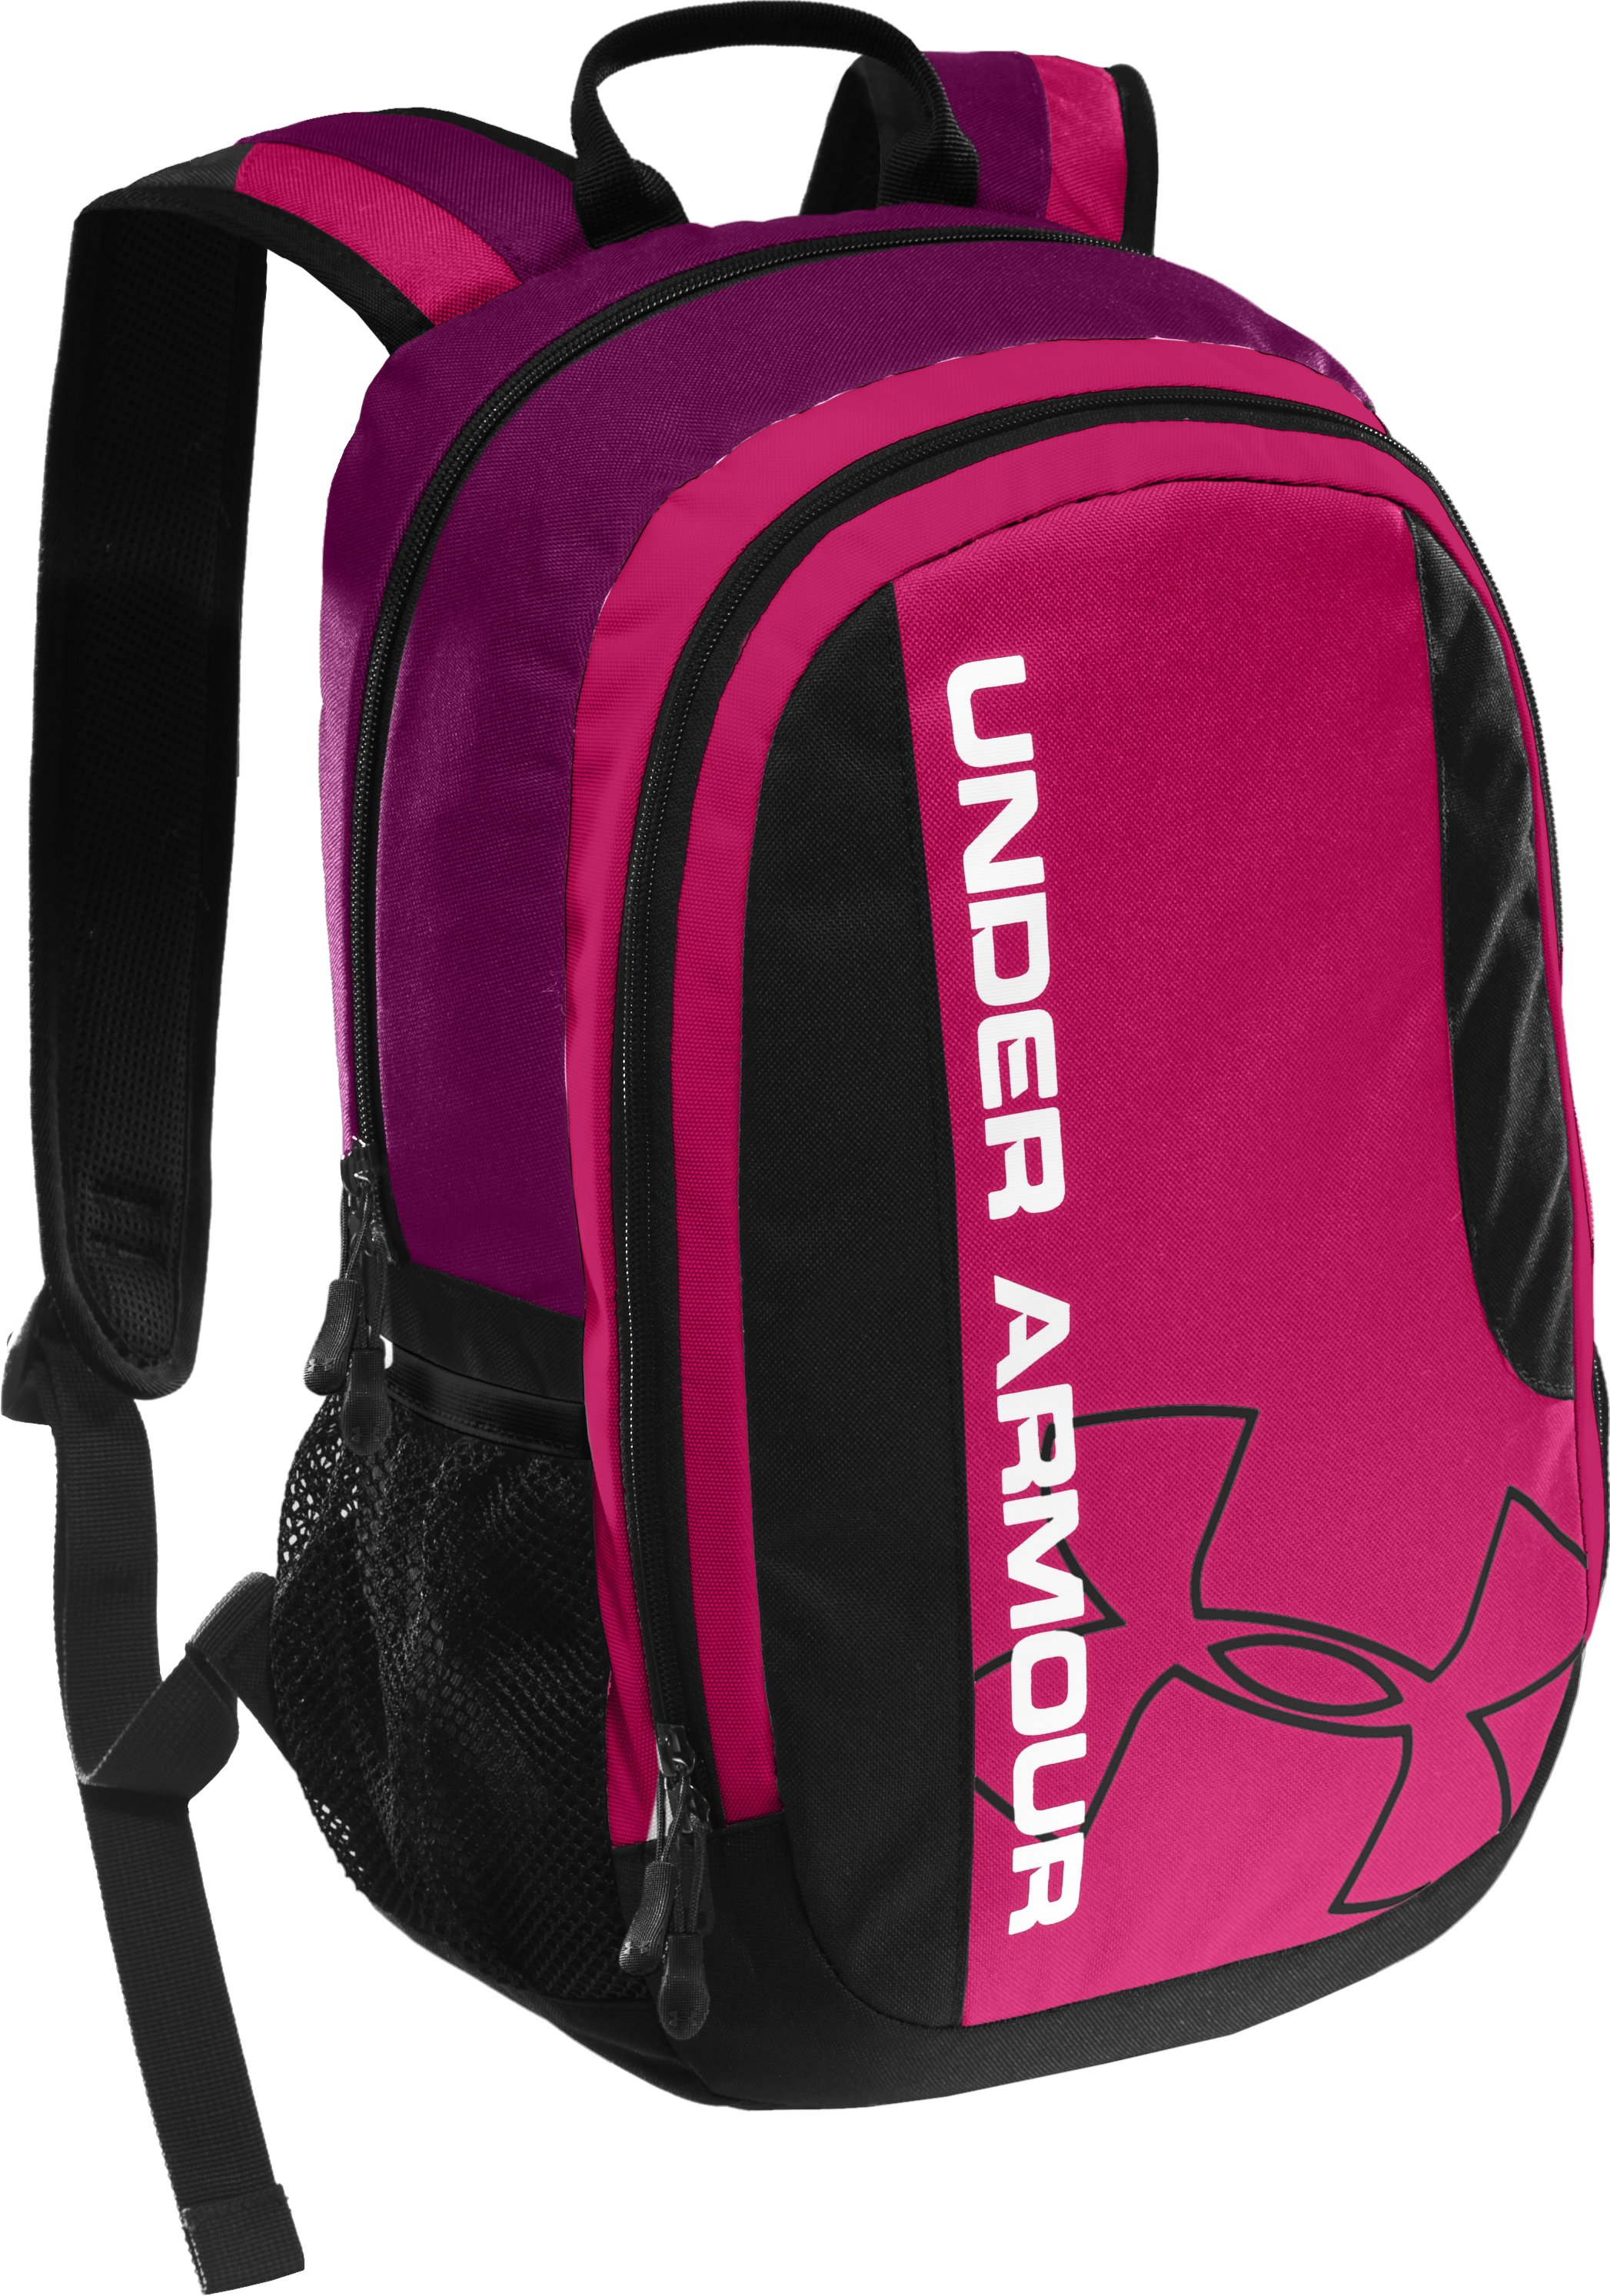 Dauntless Backpack, Beet